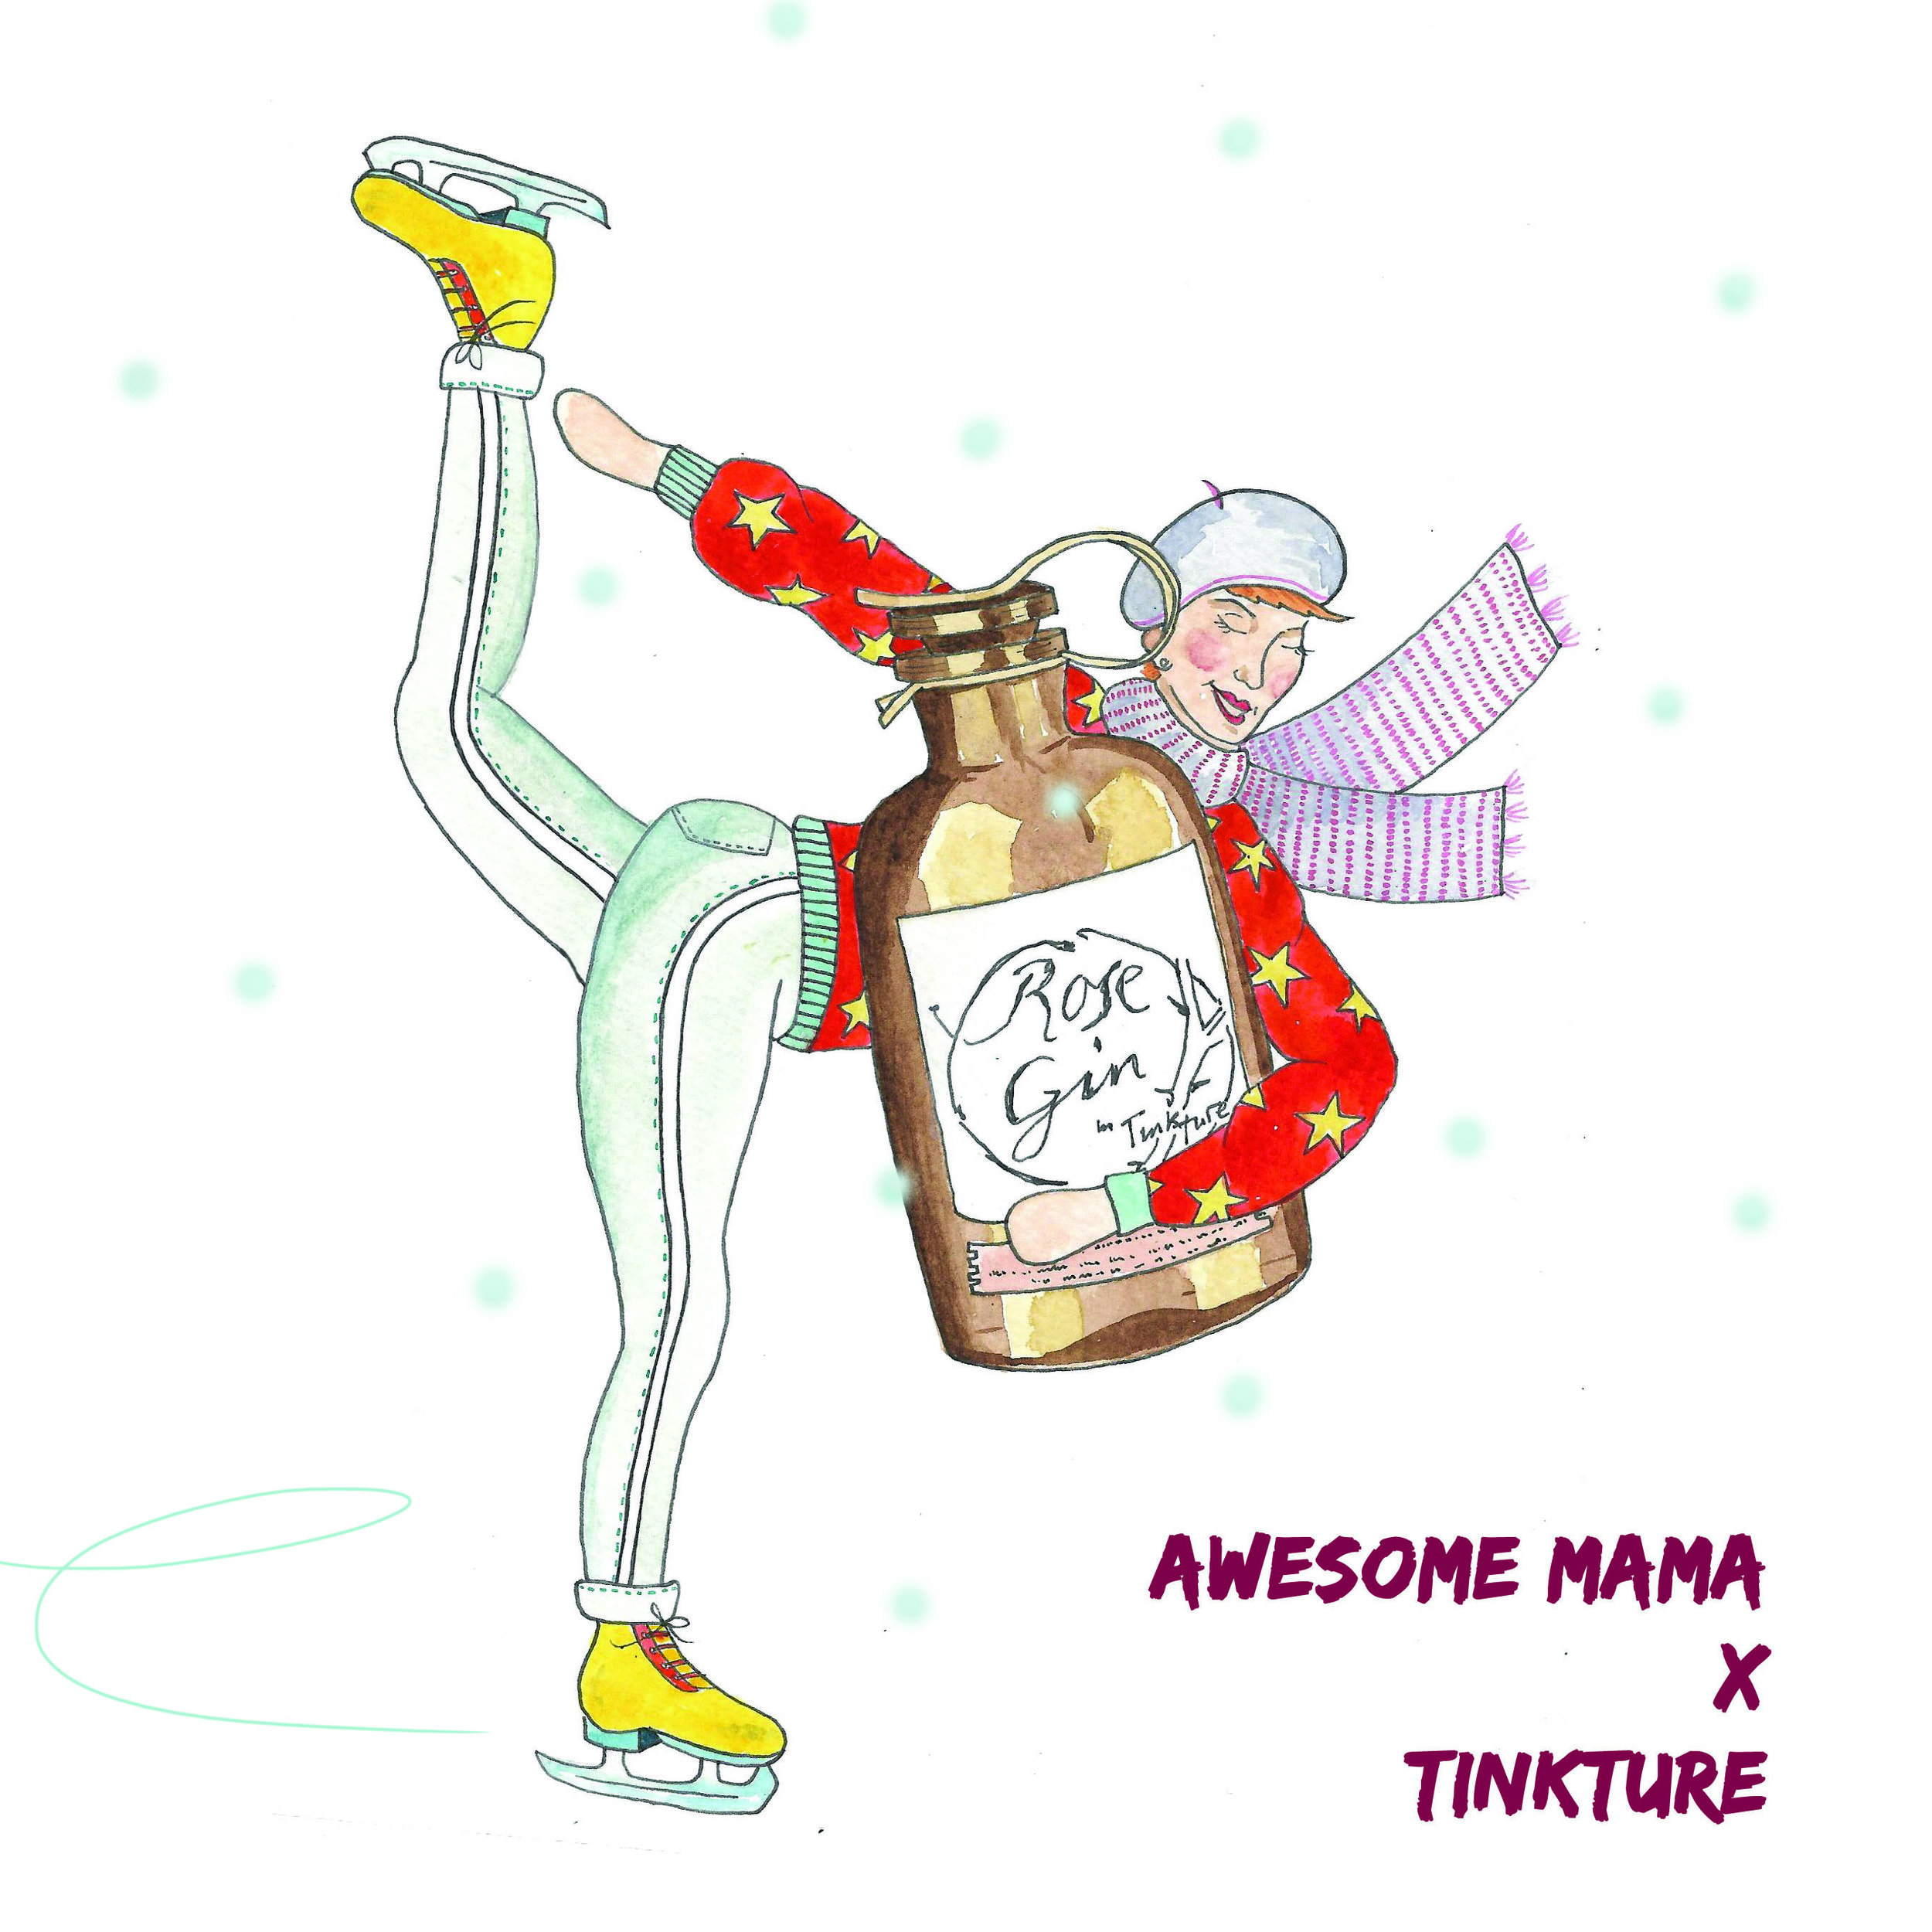 tinkture gin and awesome mama illustration christmas gin competition